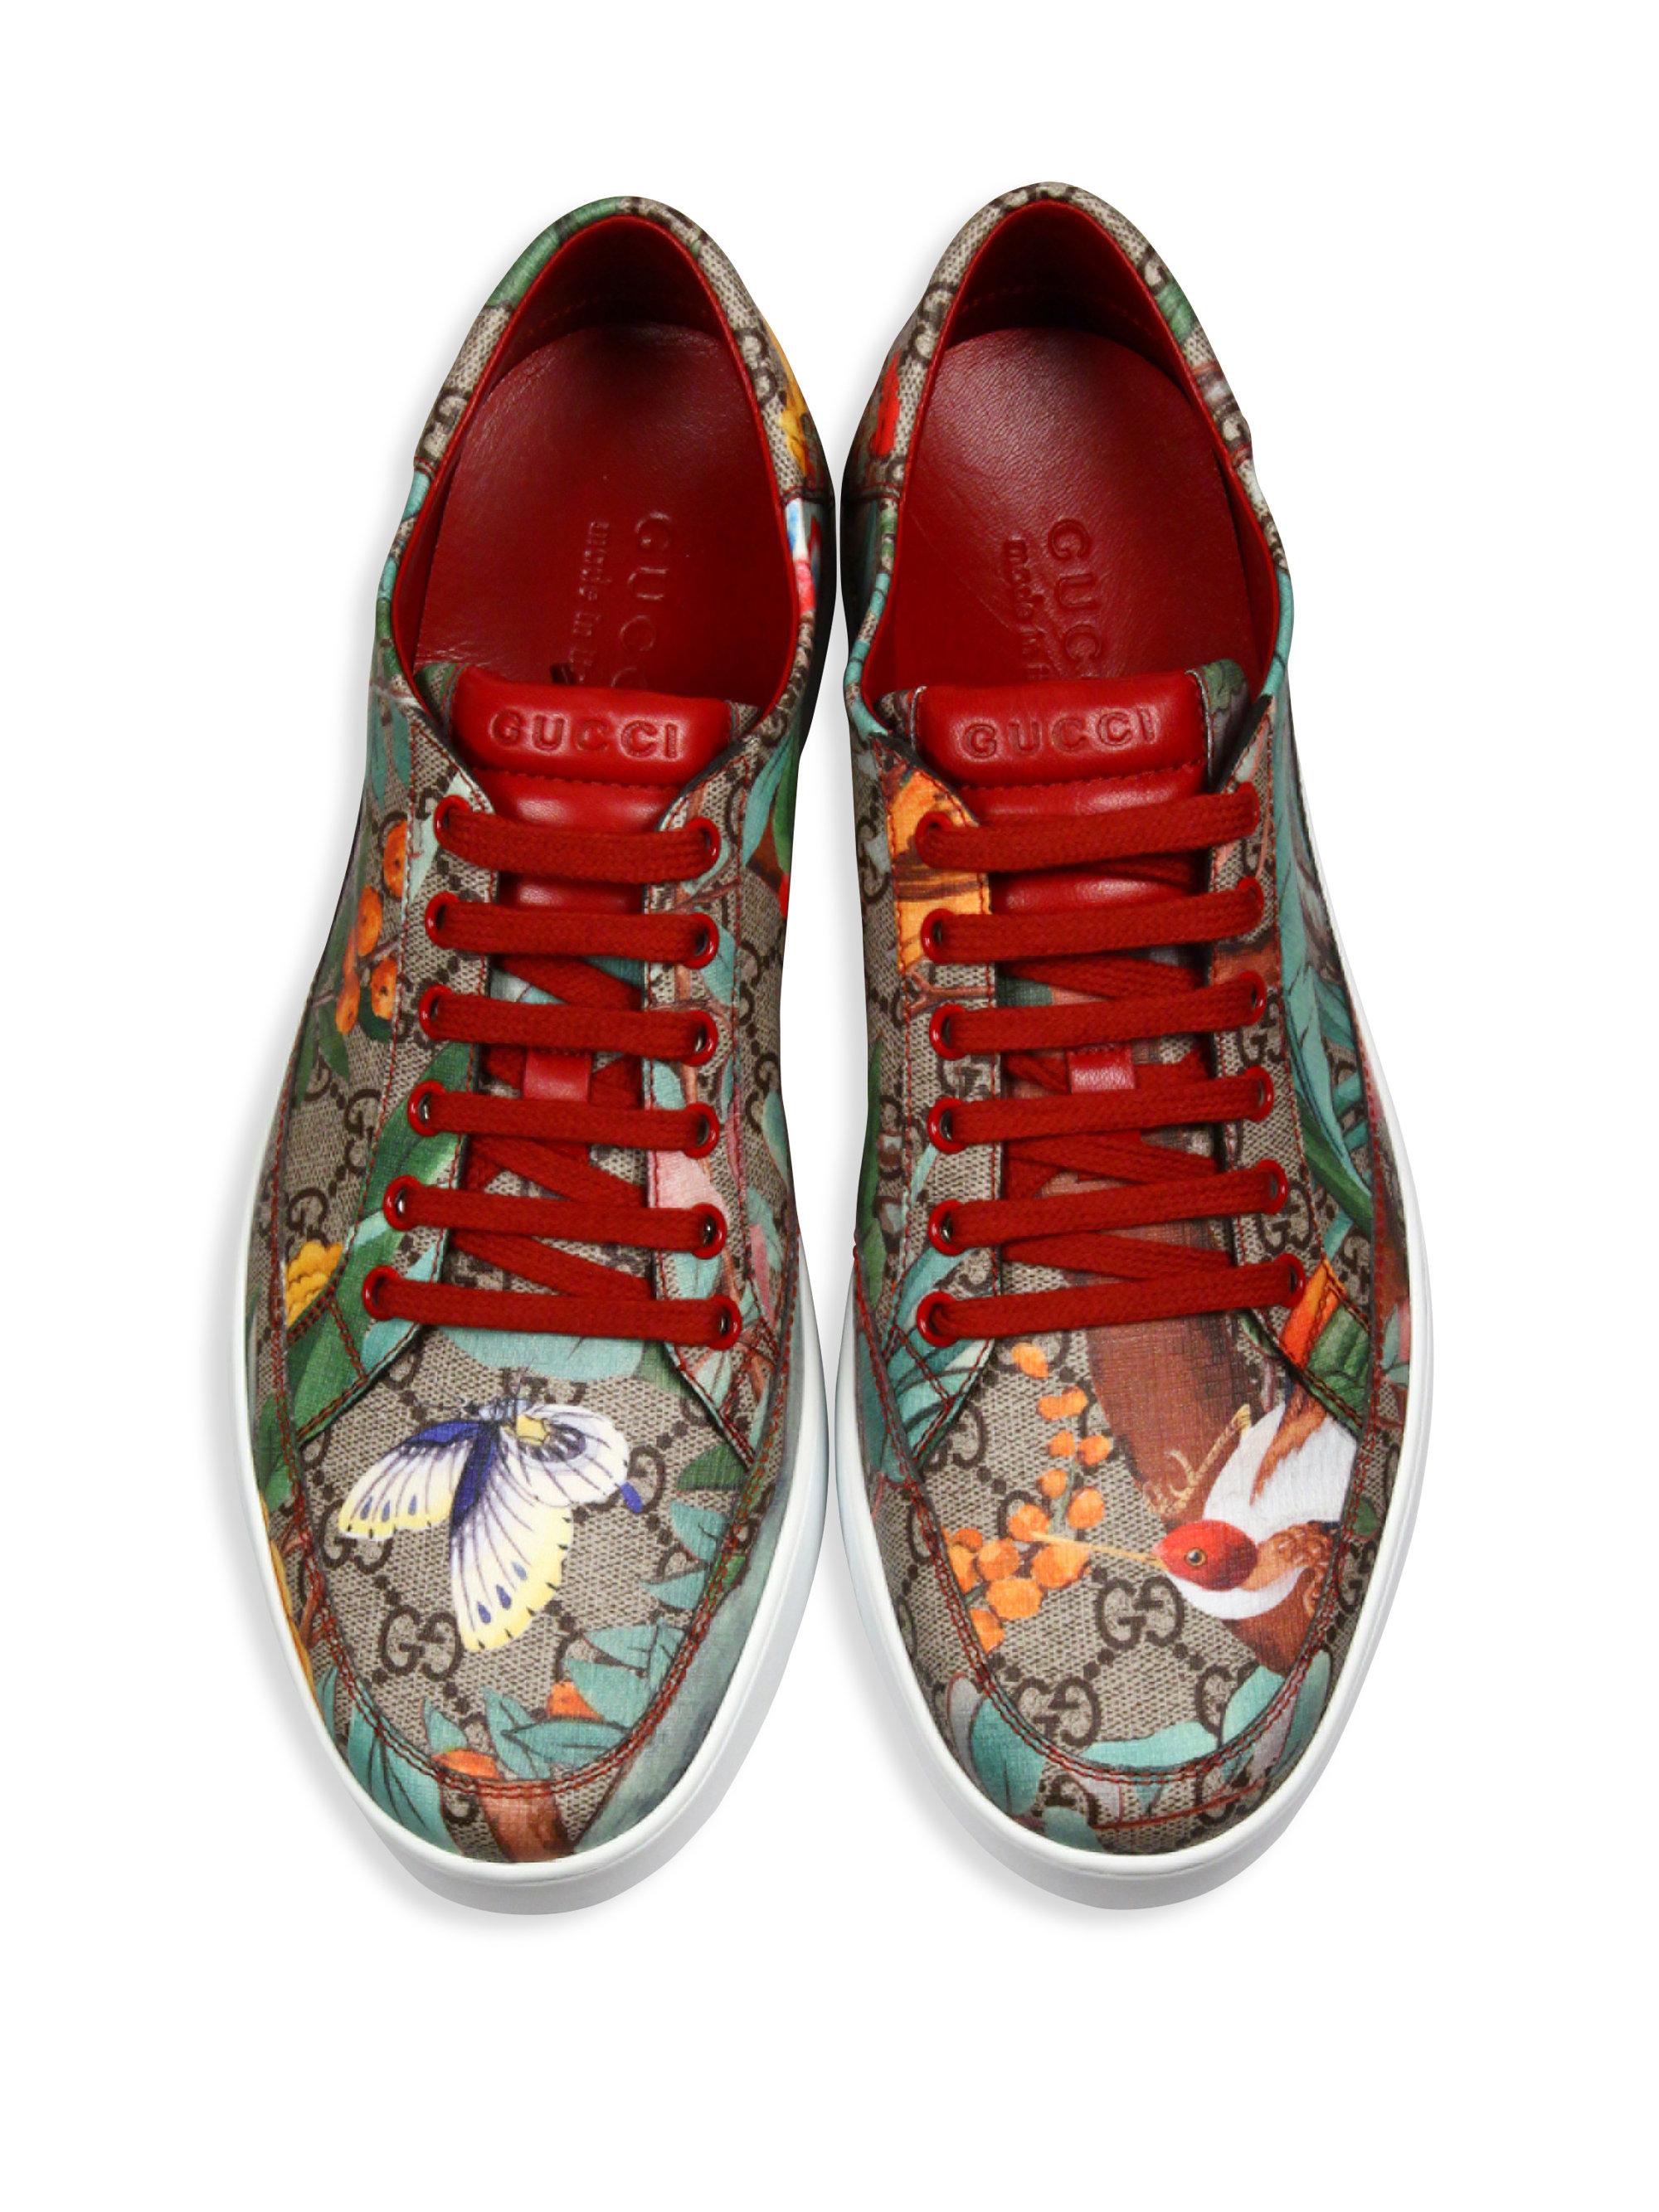 6a7eeb388 Gucci Gg Supreme Tian Low-top Sneakers for Men - Lyst